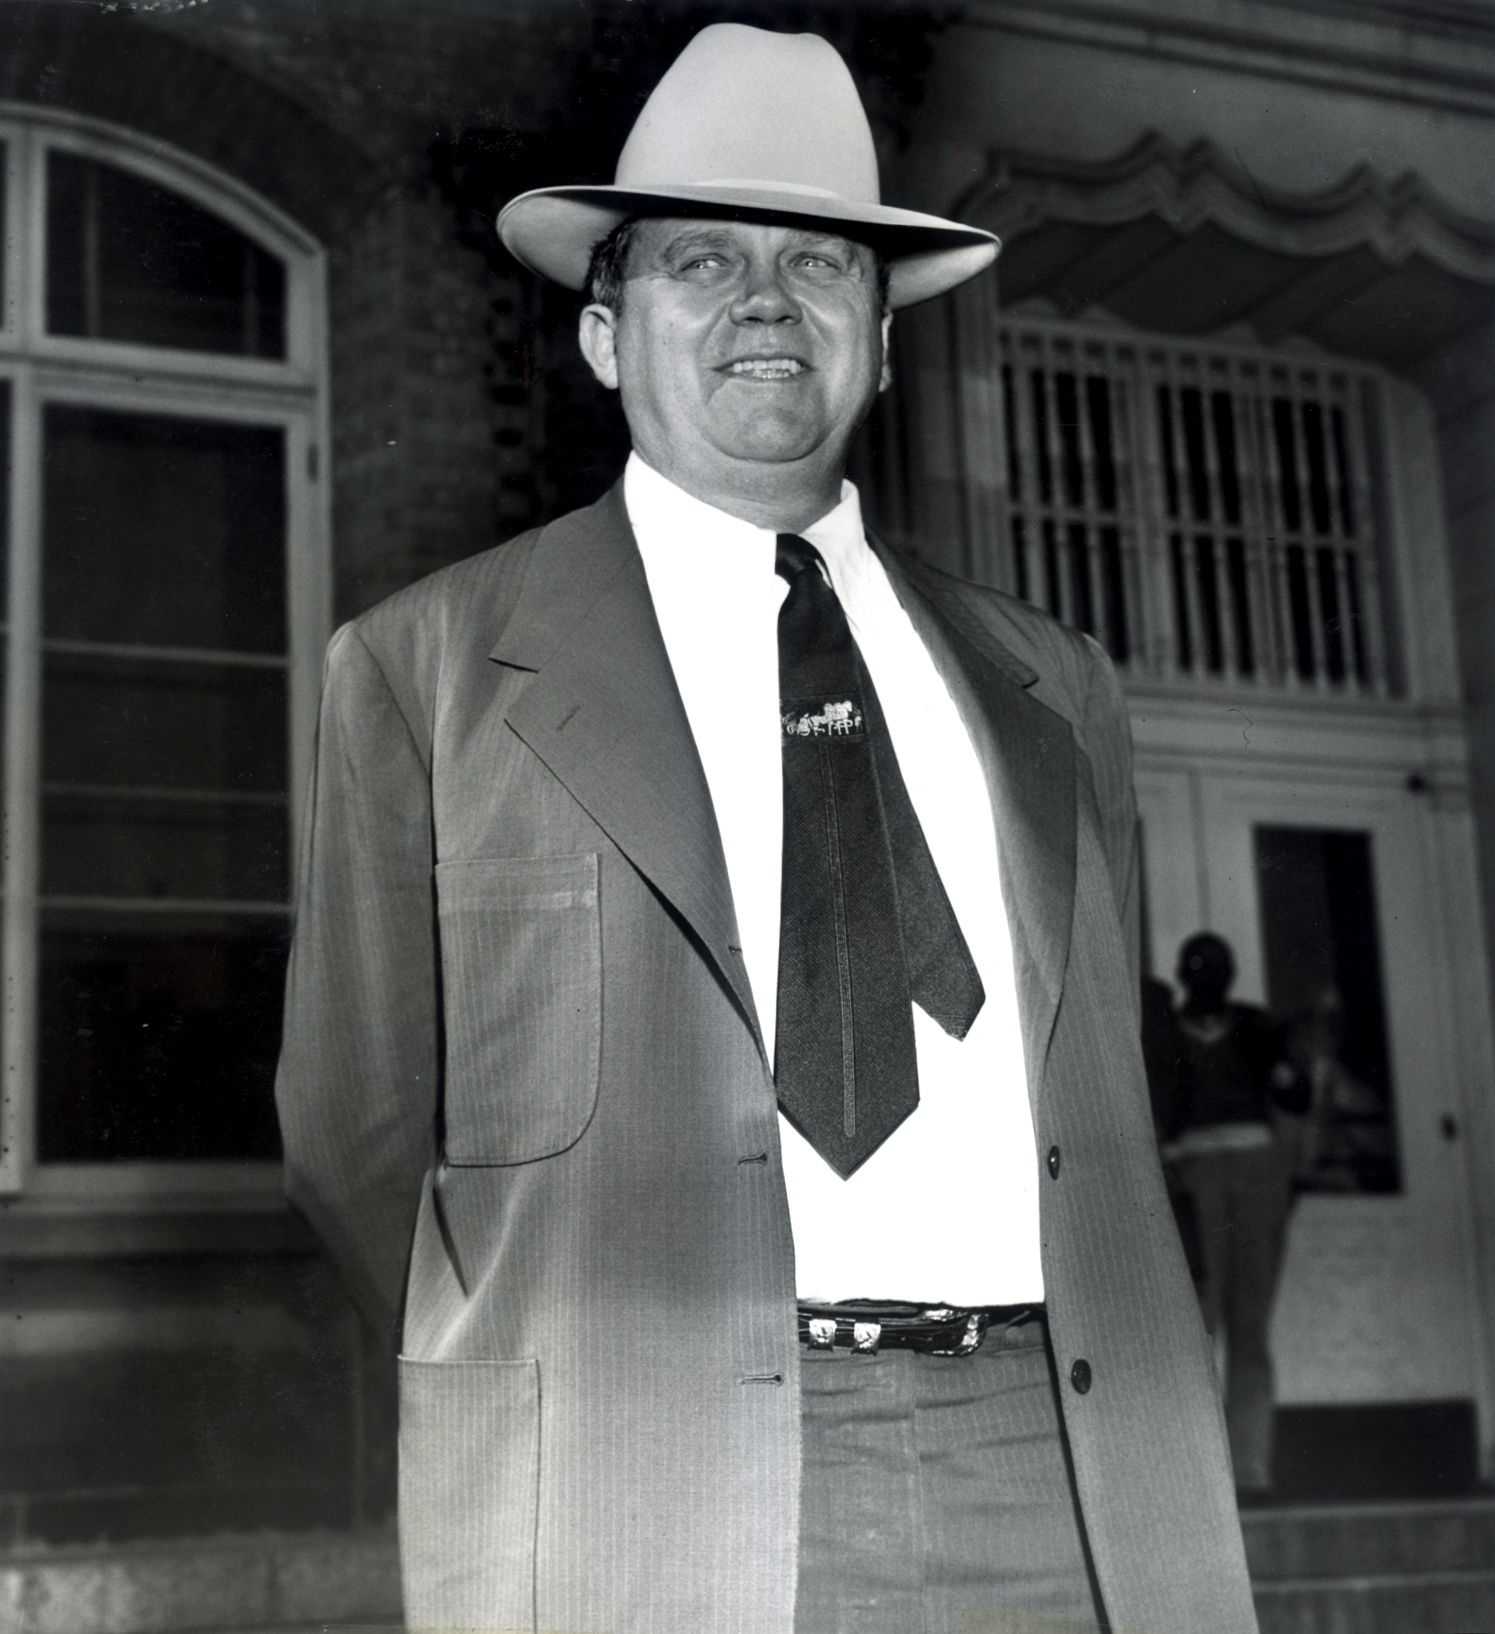 Benny Binion, who shifted his operations from Dallas to Las Vegas in the late '40s, was pictured on the steps of the federal courthouse in Waco in 1953.